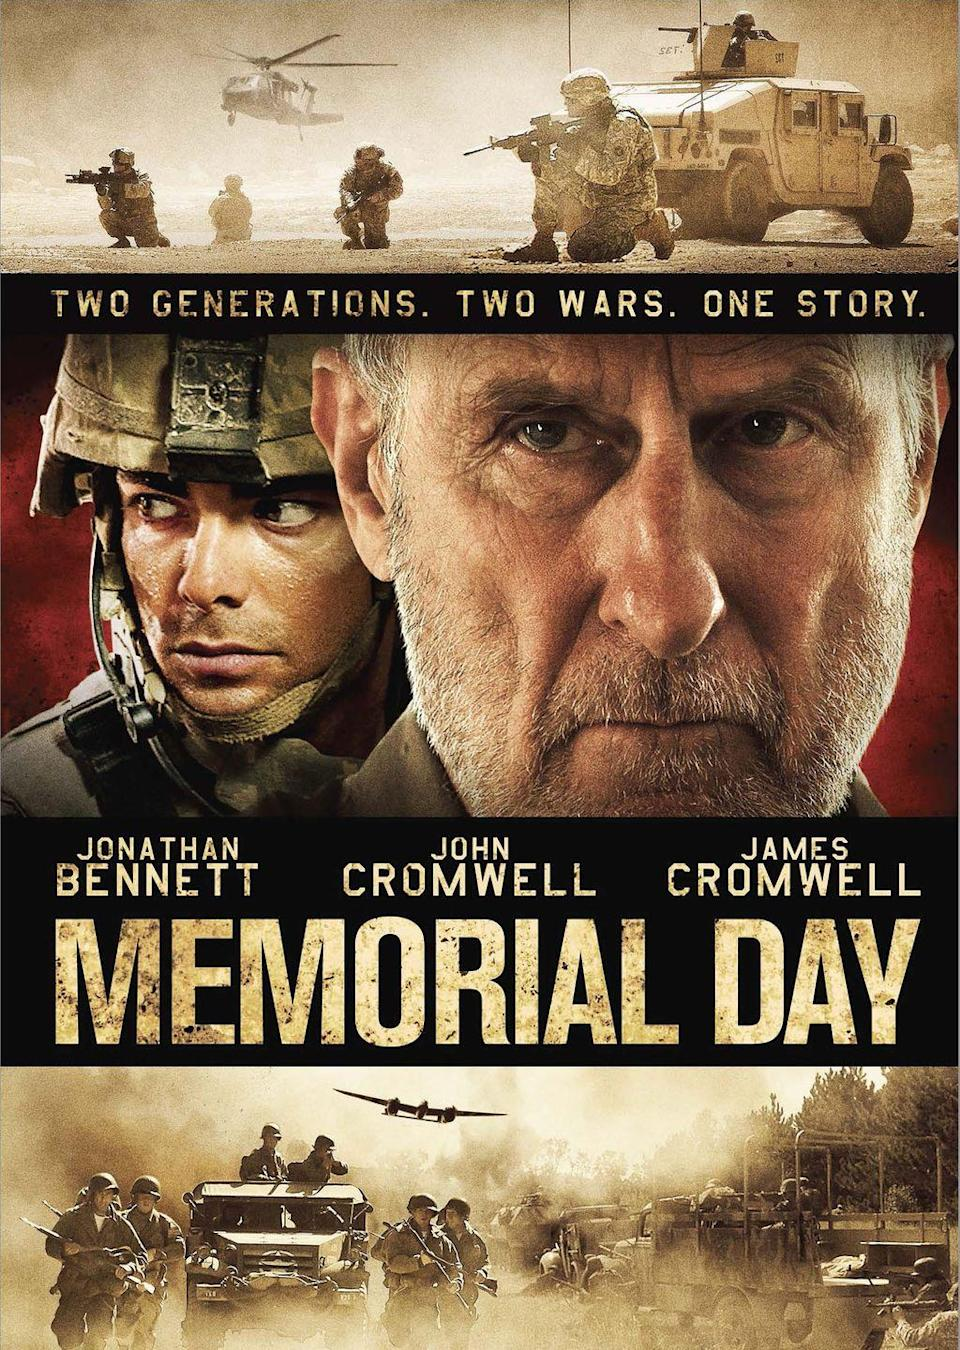 "<p><a class=""link rapid-noclick-resp"" href=""https://www.amazon.com/Memorial-Day-James-Cromwell/dp/B087ZN926B?tag=syn-yahoo-20&ascsubtag=%5Bartid%7C10070.g.36096919%5Bsrc%7Cyahoo-us"" rel=""nofollow noopener"" target=""_blank"" data-ylk=""slk:STREAM NOW"">STREAM NOW</a></p><p>Told through flashbacks and glimpses into the future,<em> Memorial Day</em> follows the stories of a grandfather, who was part of the 82nd Airborne Division in World War II, and his grandson, who eventually joins the 34th Infantry Division in Iraq. This movie will show you a whole new side of <em>Mean Girl</em>'s Jonathan Bennett.</p>"